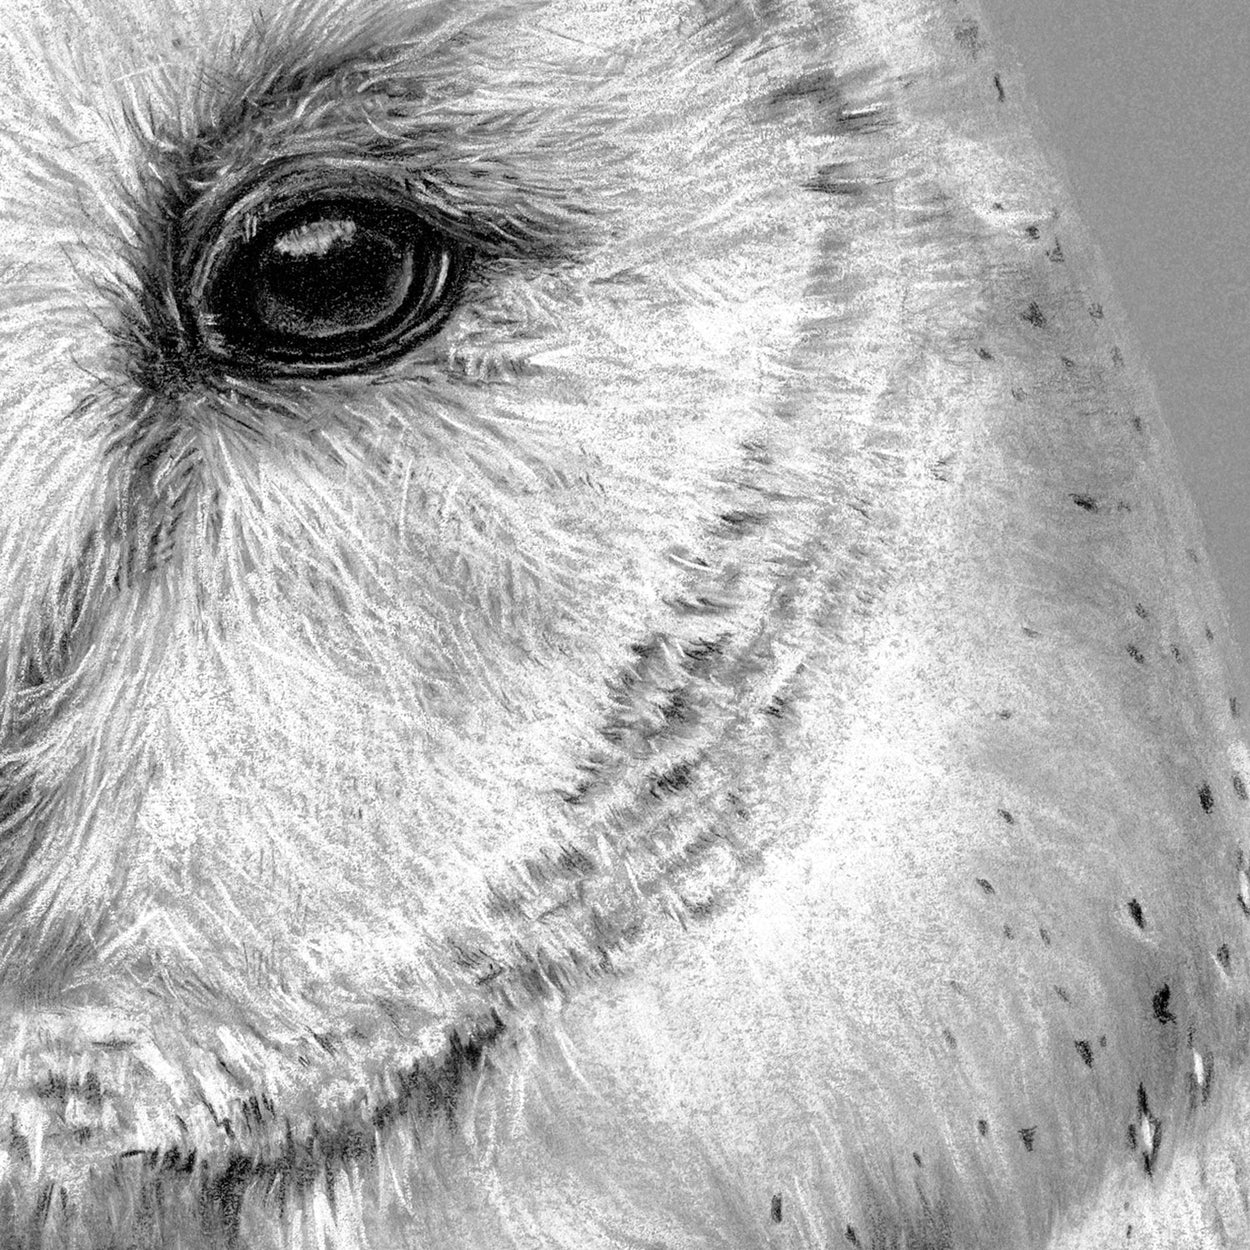 Barn Owl Close-up Drawing 2 - The Thriving Wild